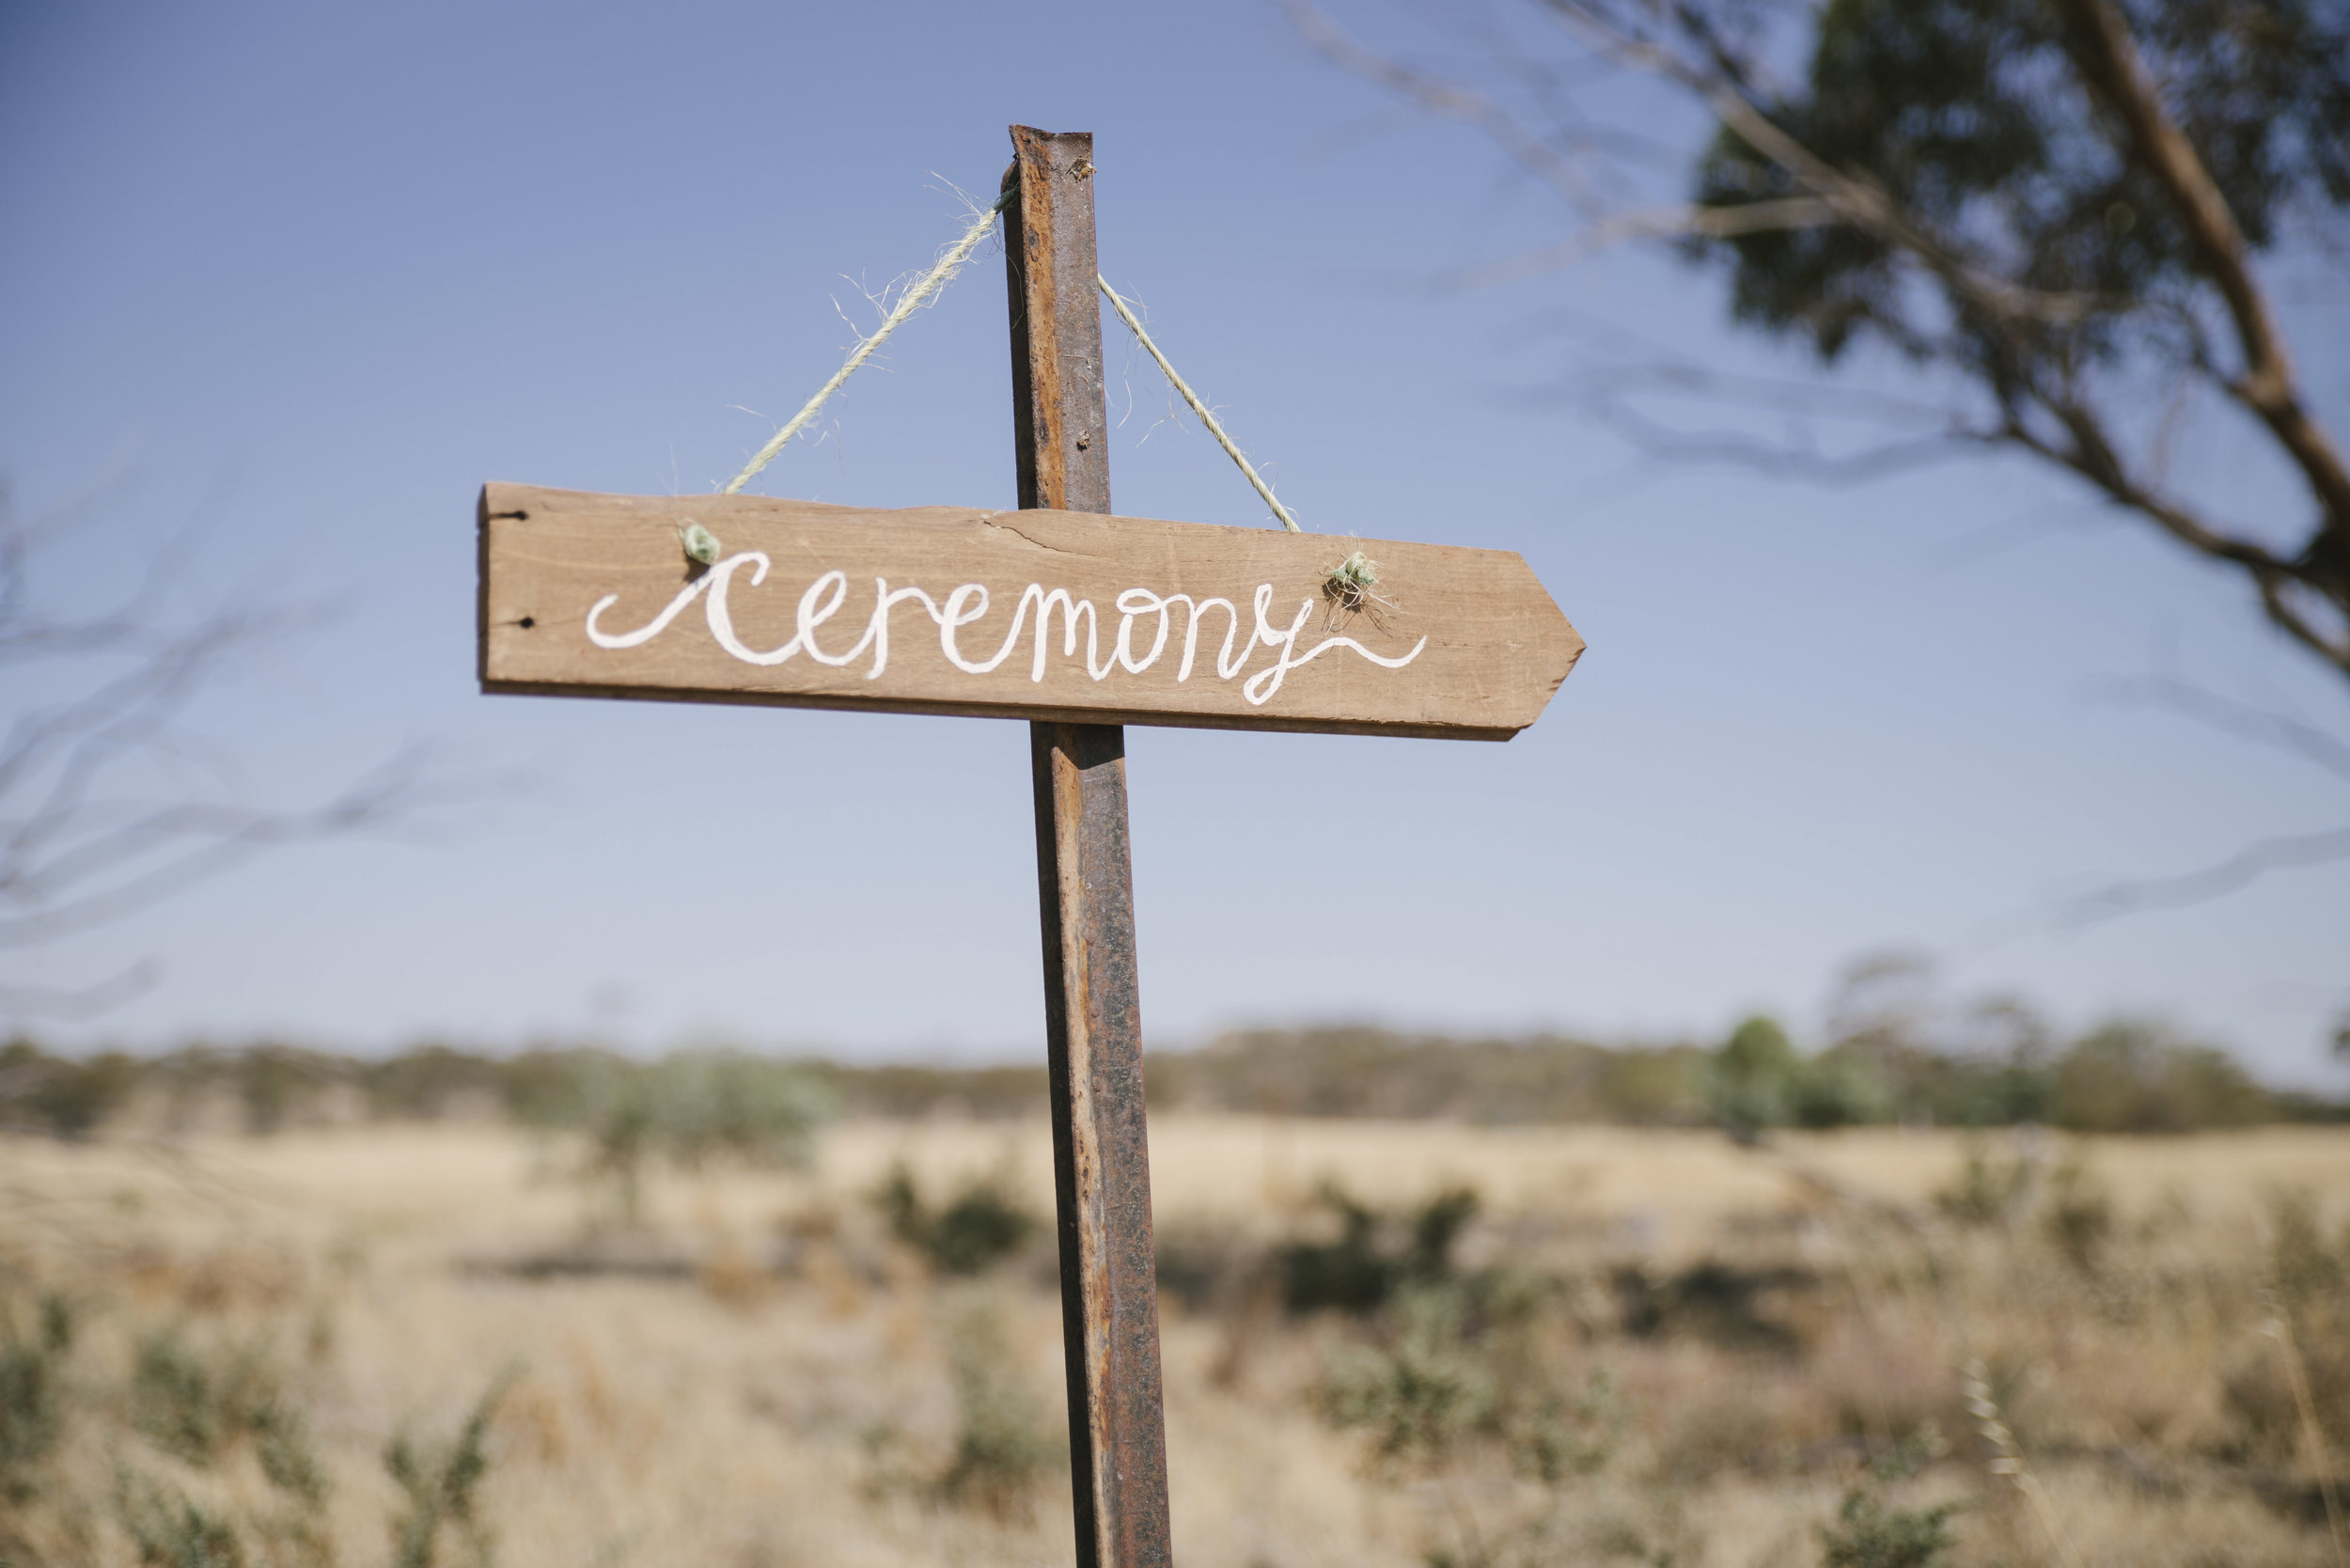 Wheatbelt Merredin Rustic Rural Farm Wedding (10).jpg